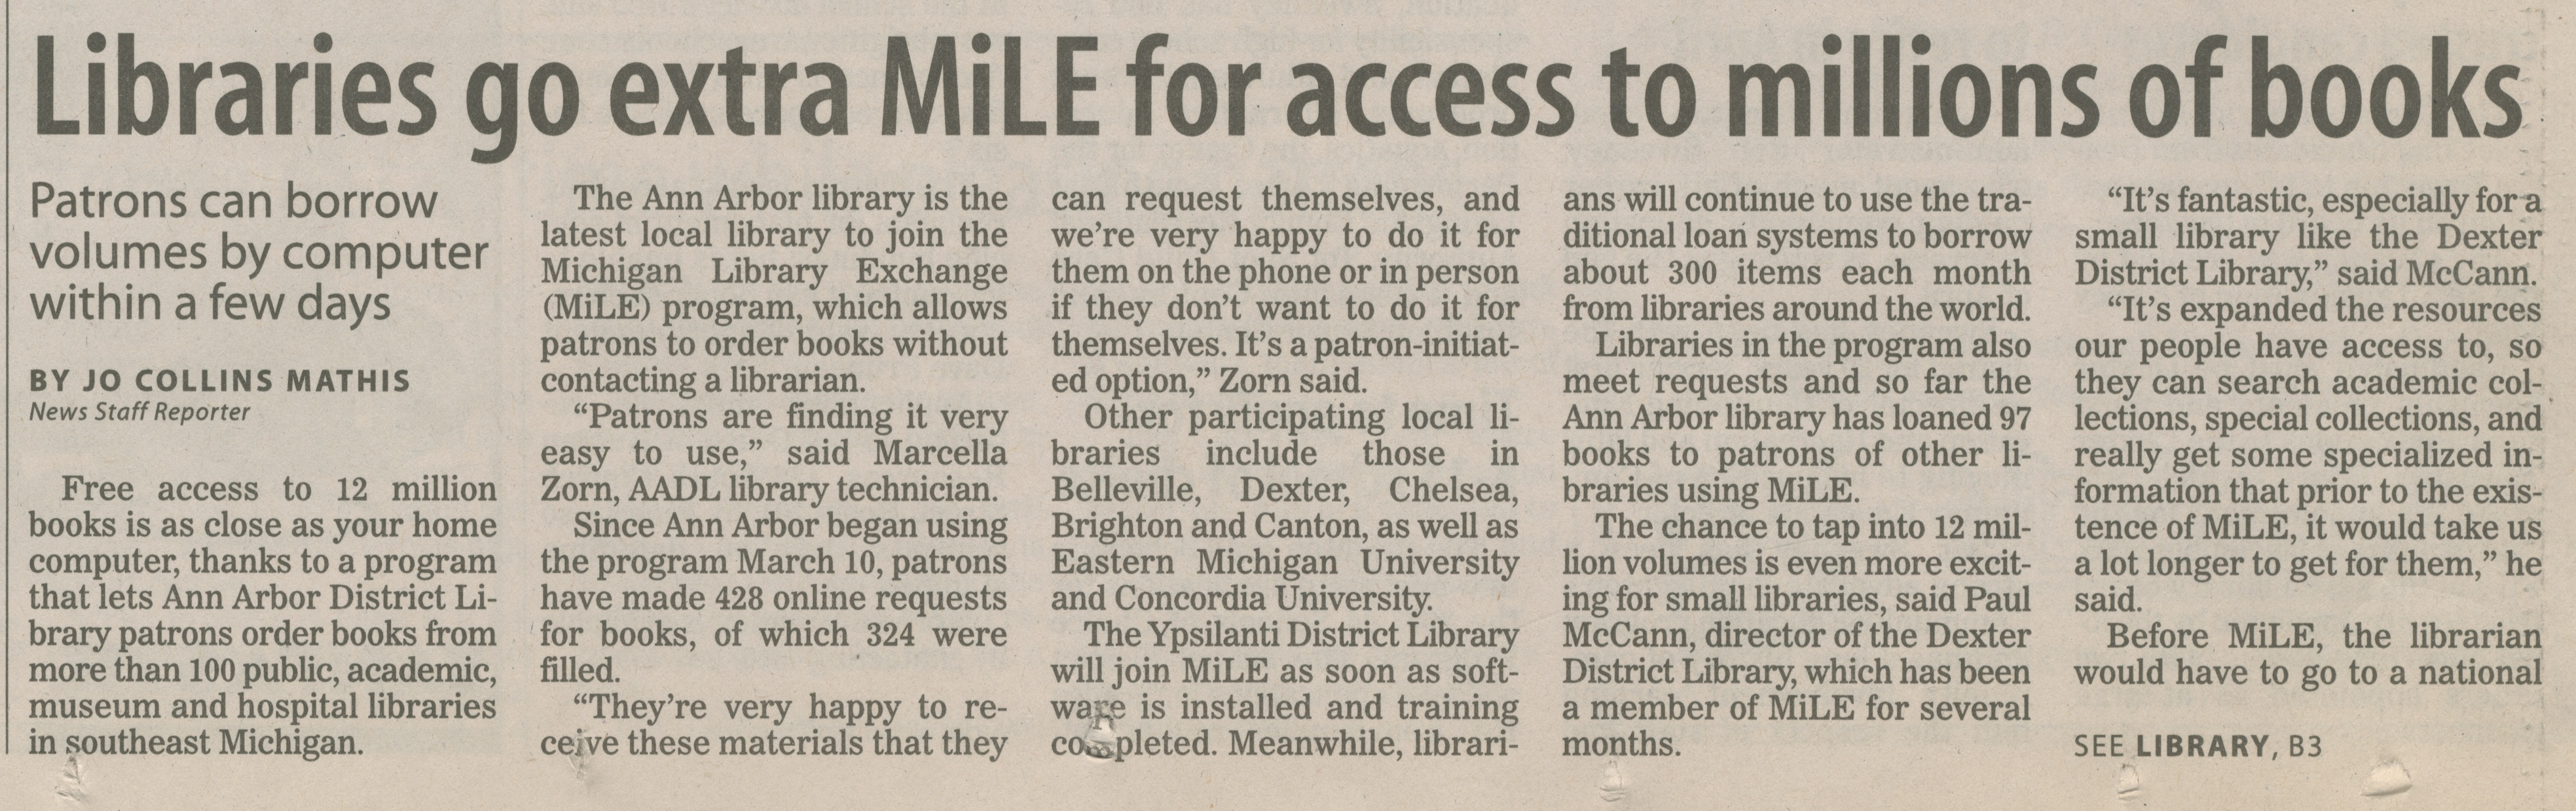 Libraries Go Extra MiLE For Access To Millions Of Books image